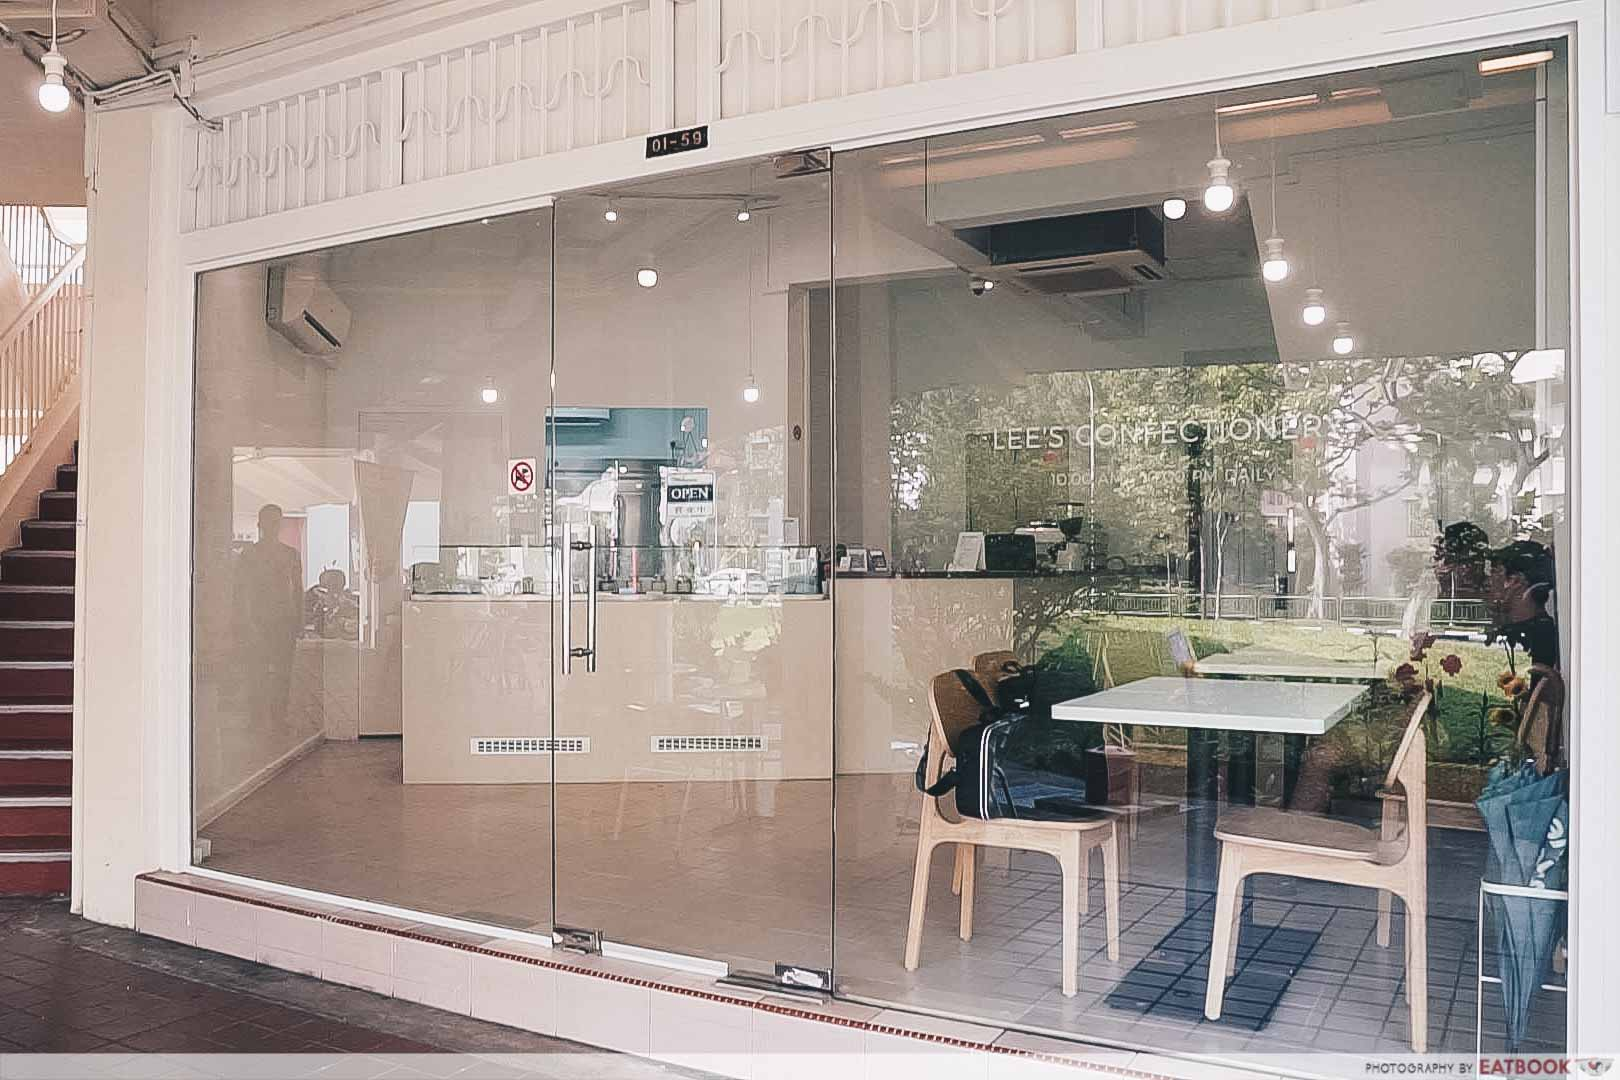 Minimalist Cafes - Lee's Confectionery